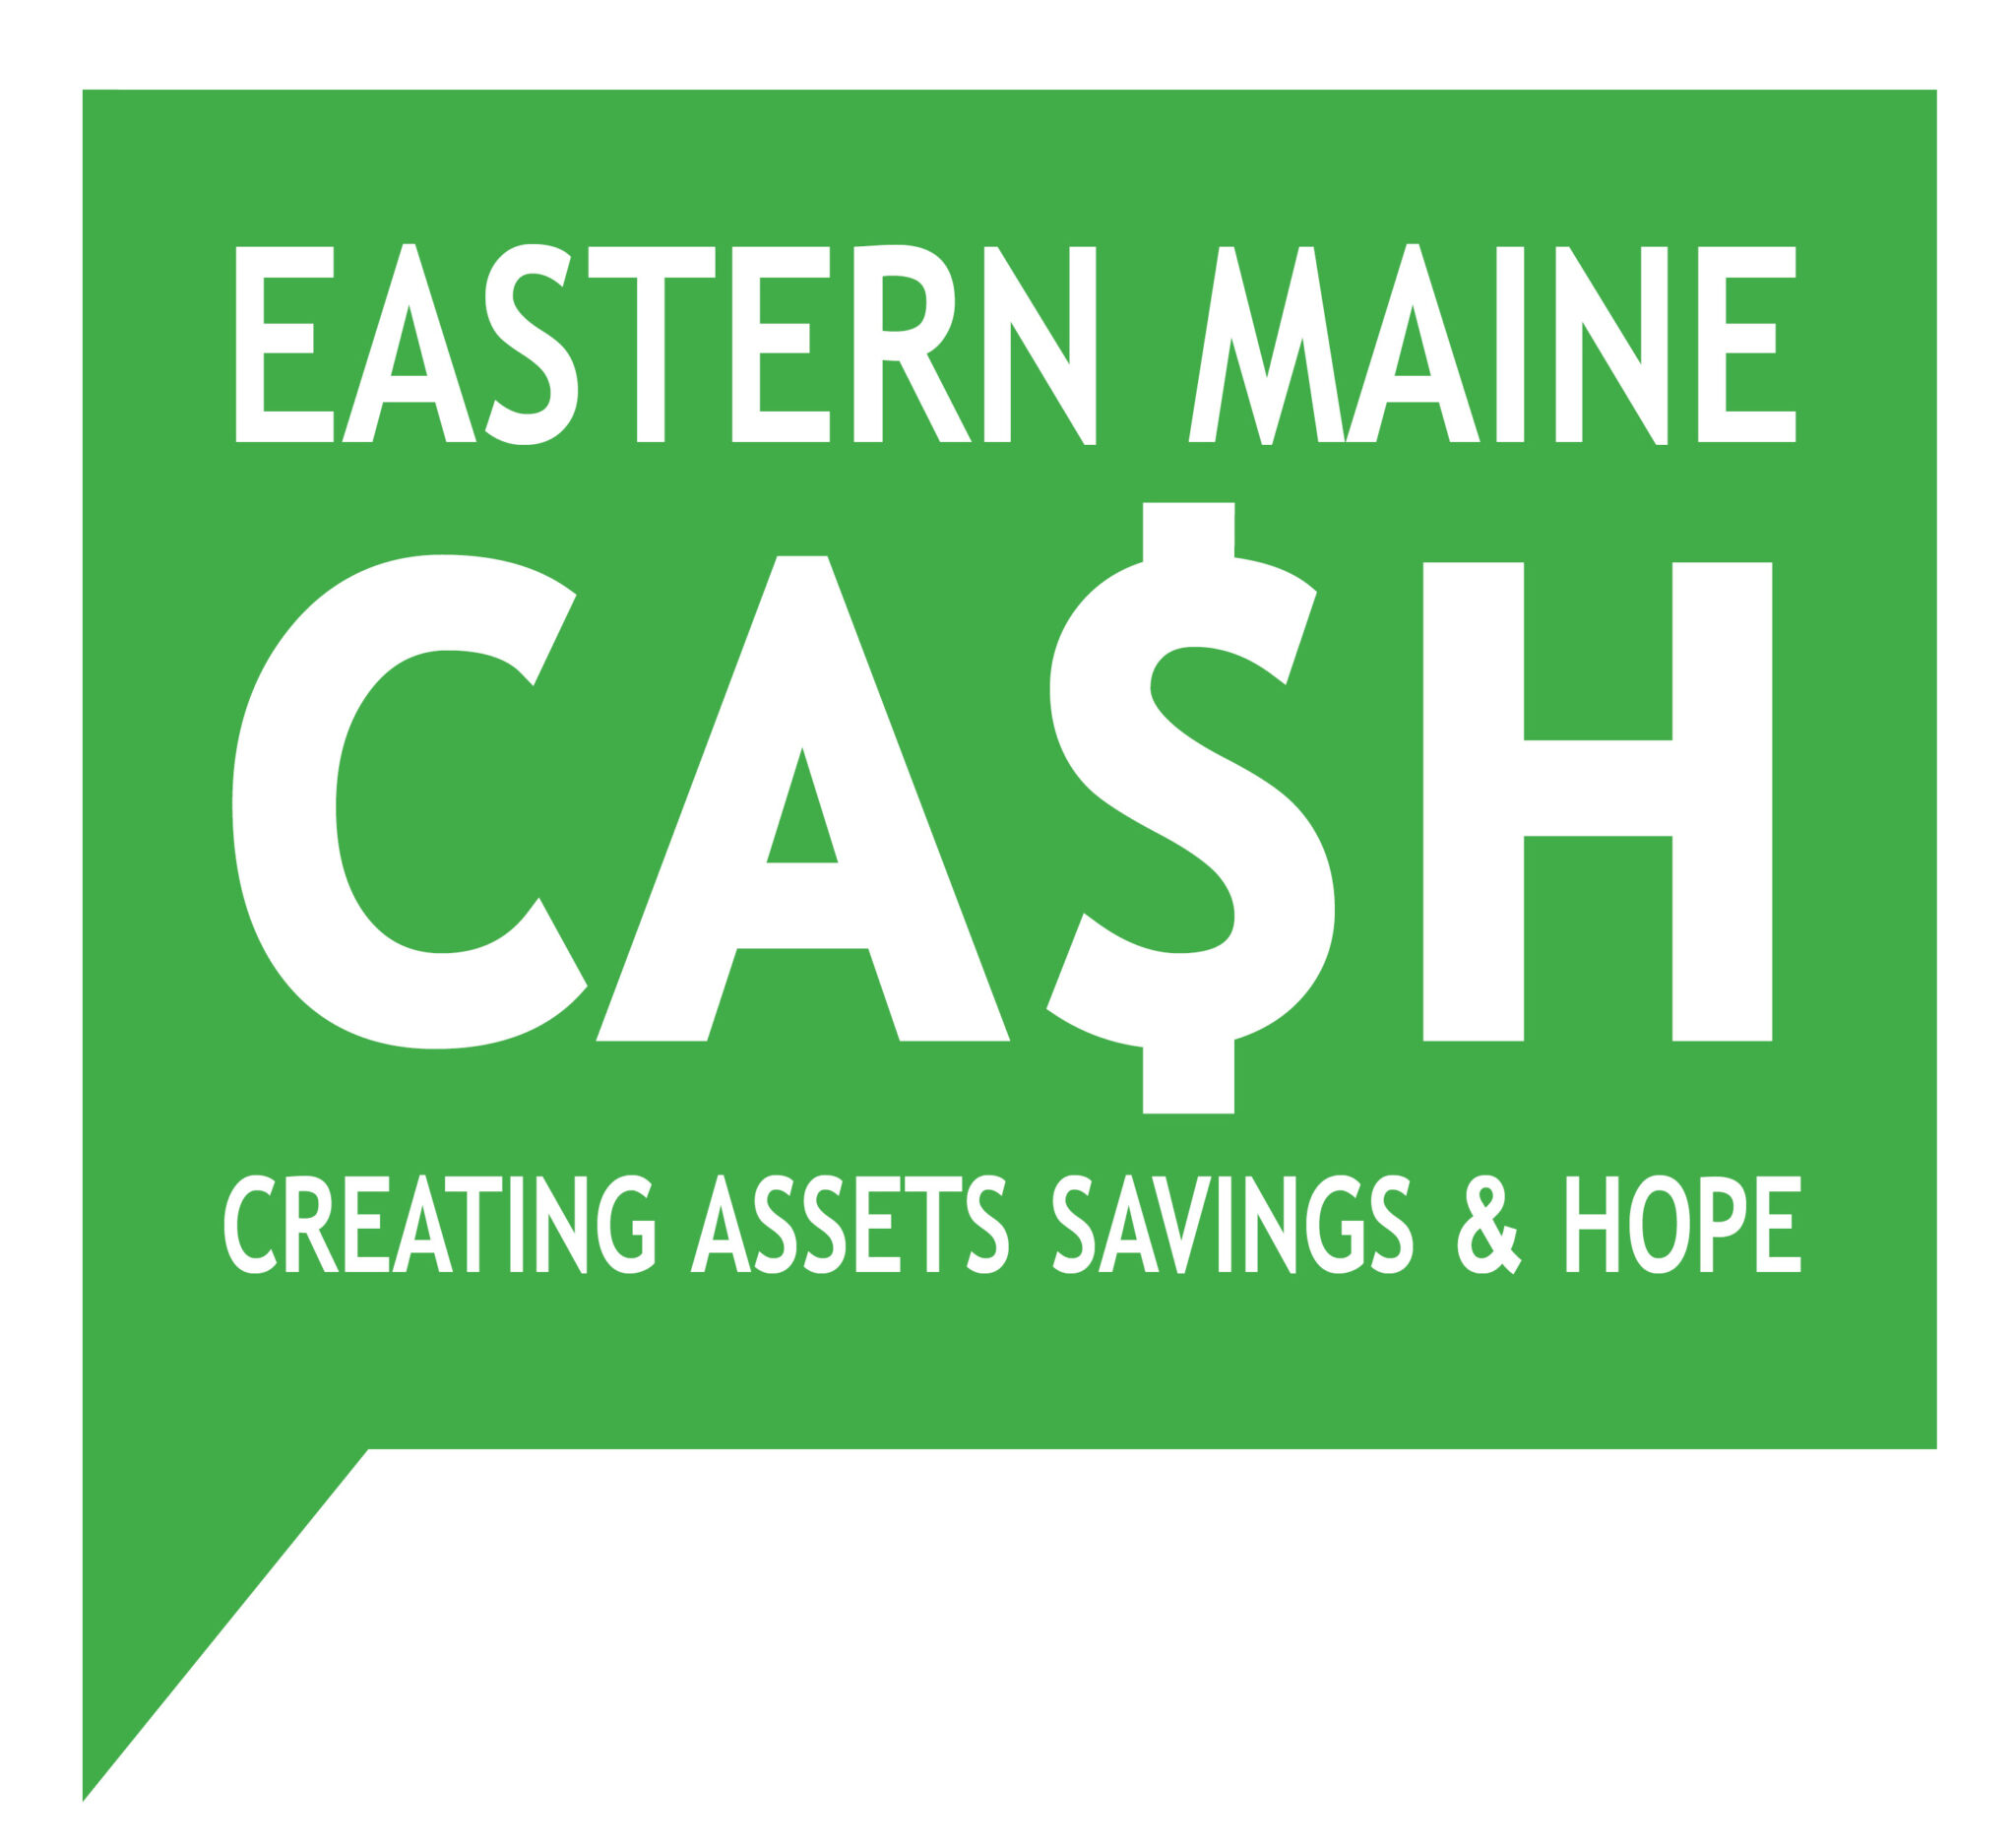 Eastern Maine Cash Coalition